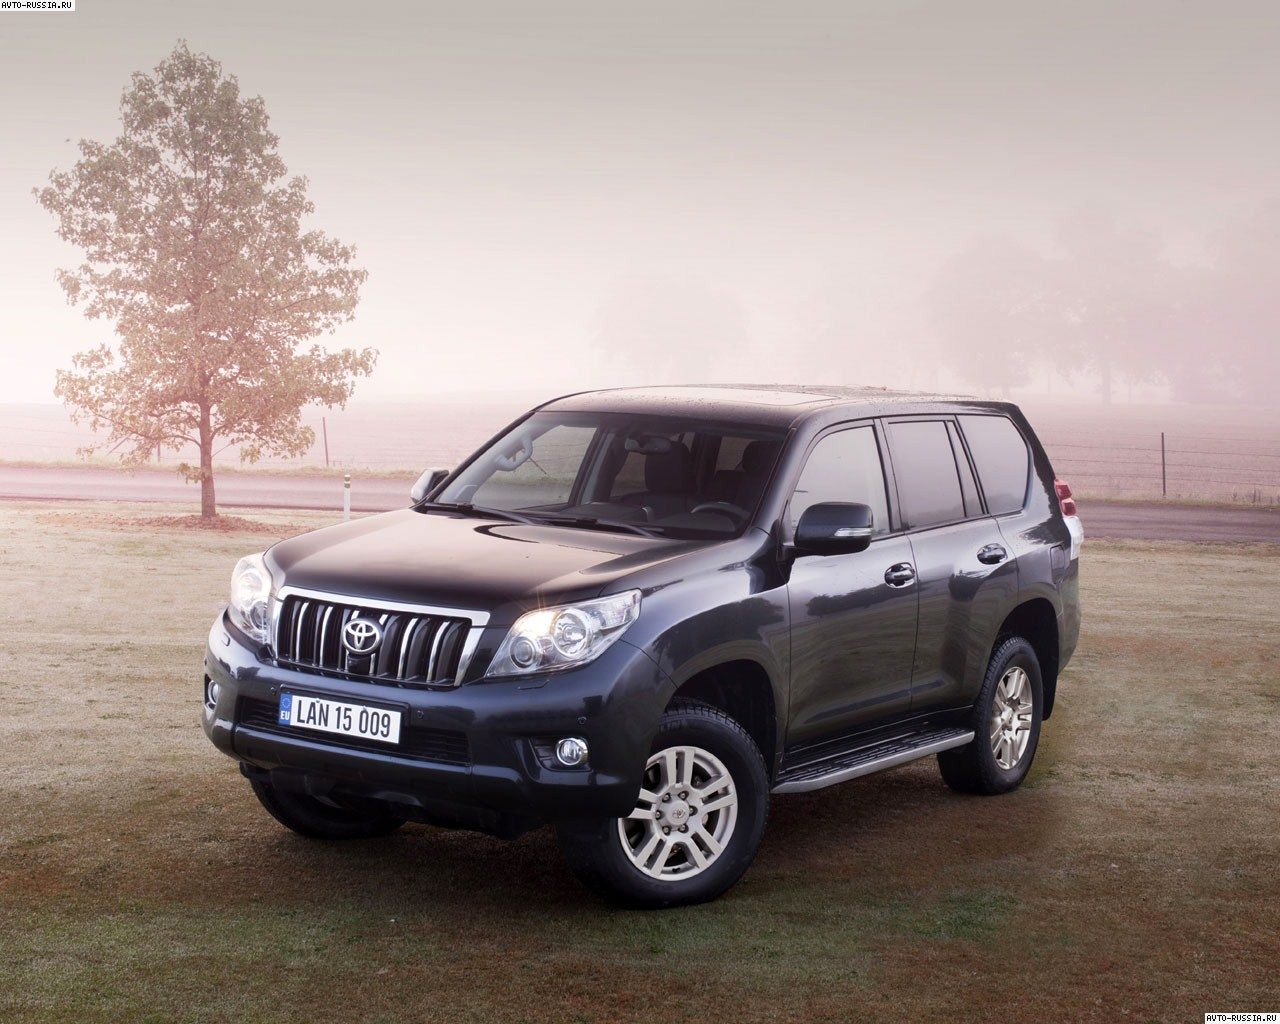 prado spy photos high resolution big size images hd wallpaper for you download toyota land cruiser prado photos online car wallpaper no 4068 for free